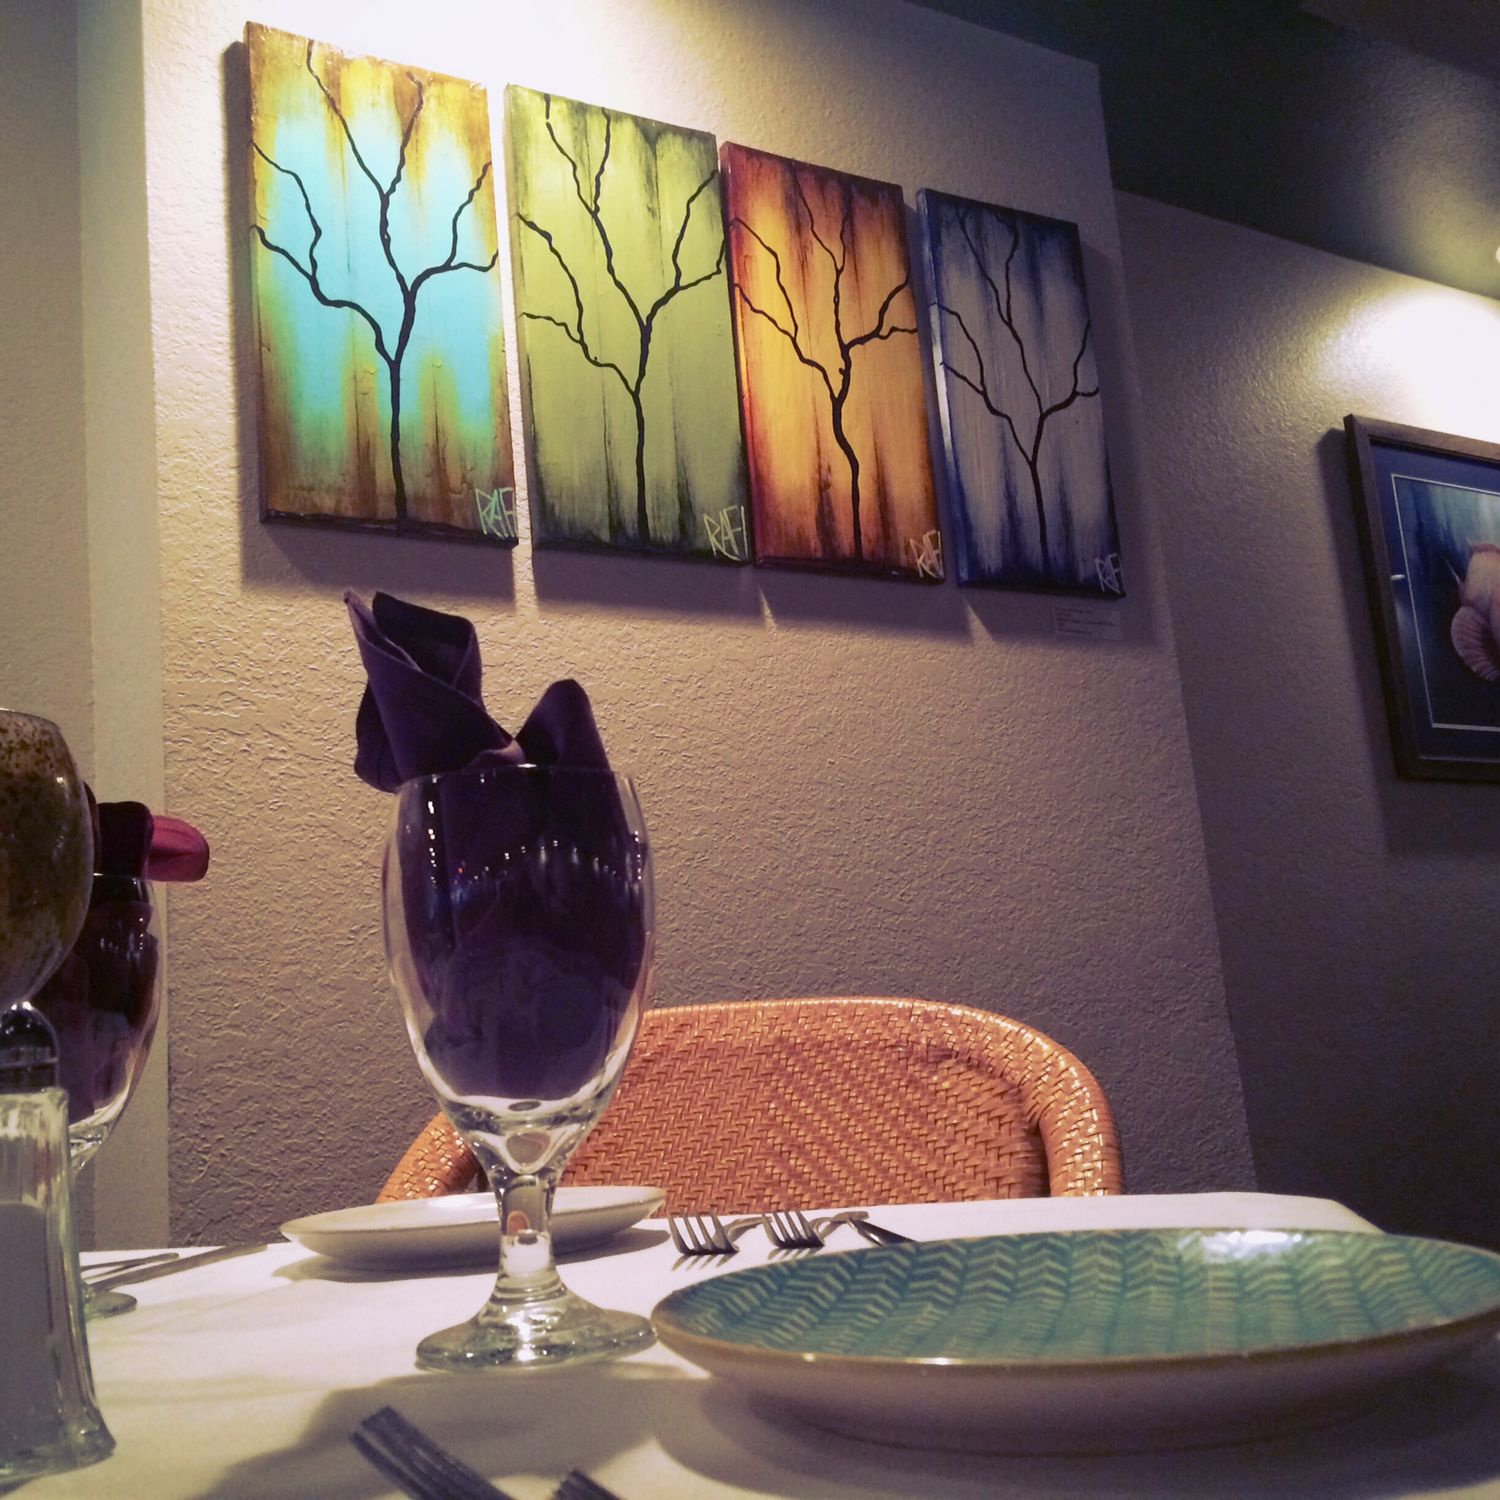 Seasons of change at Global Grill, how awesome is that?! #globalgrill #upsideofflorida #artwork #art